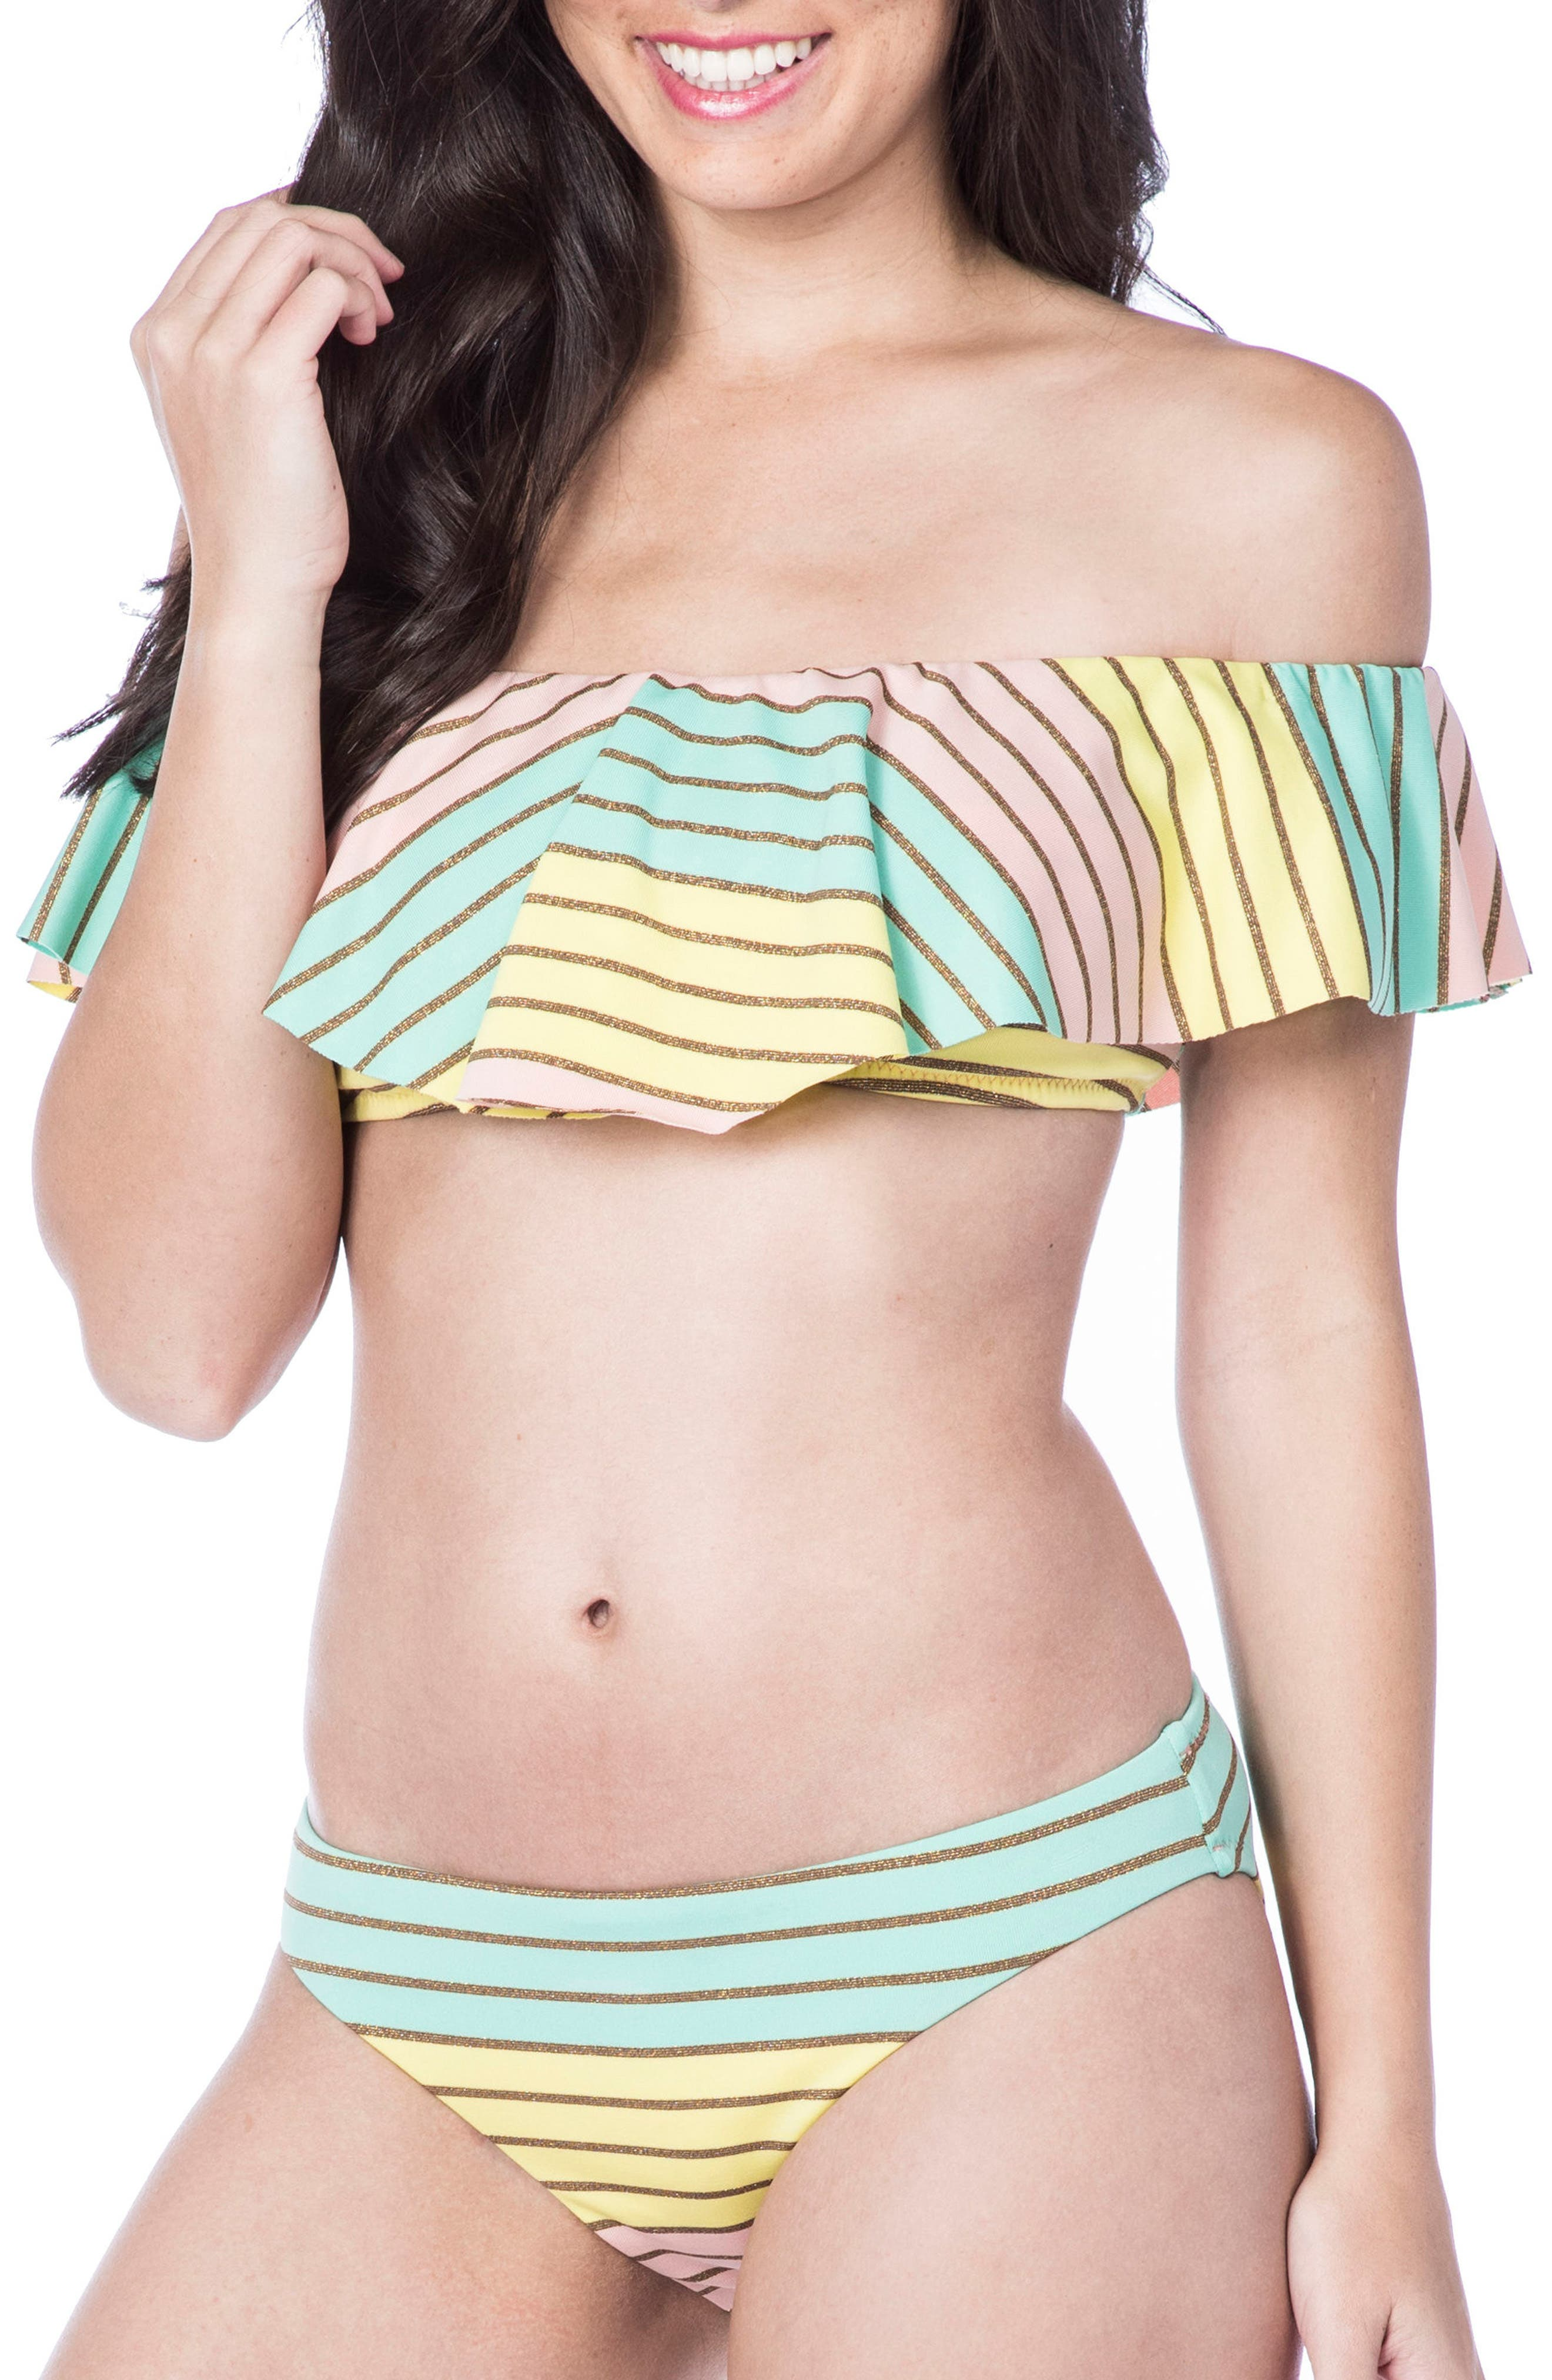 Metallic Stripe Ruffle Bikini Top,                             Main thumbnail 1, color,                             Multi-Colored